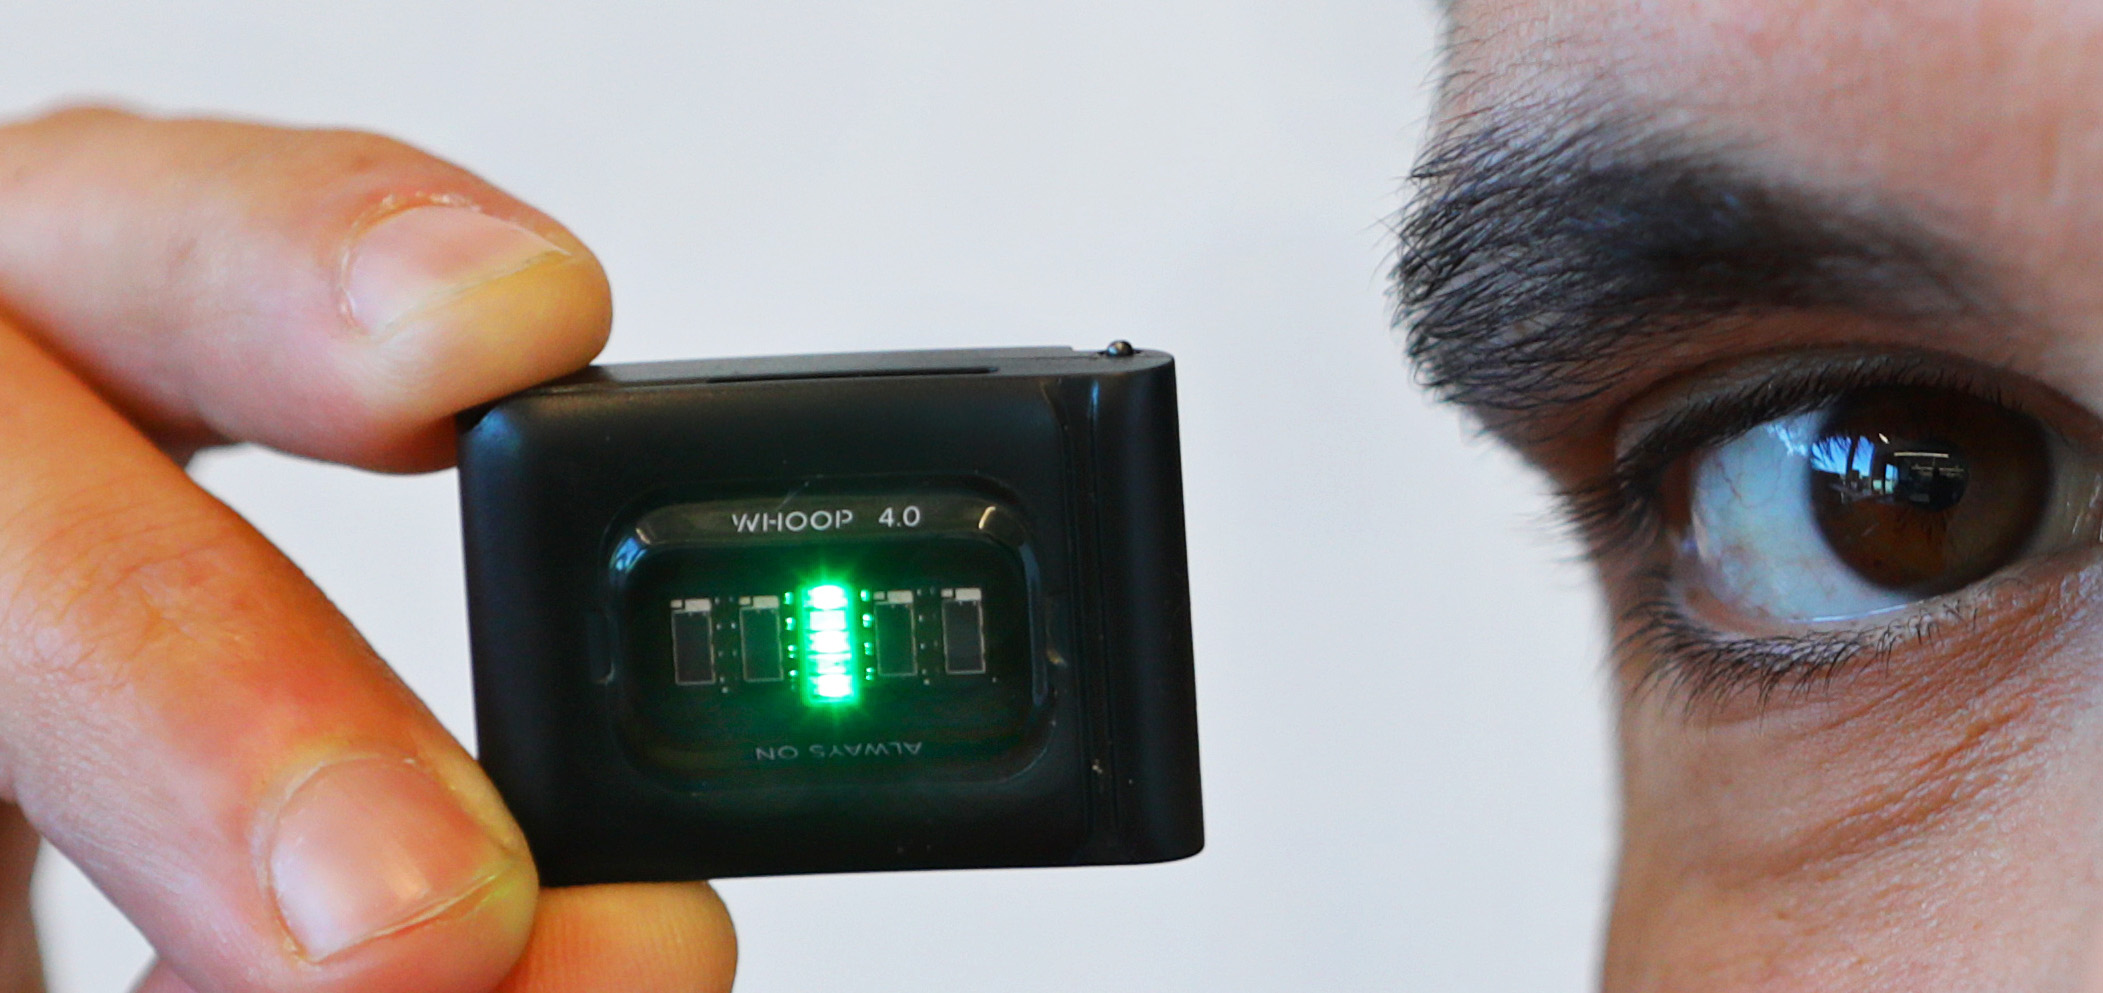 Will Ahmed is founder and CEO of WHOOP, a fitness wearable company. He holds the new WHOOP 4.0 sensor.